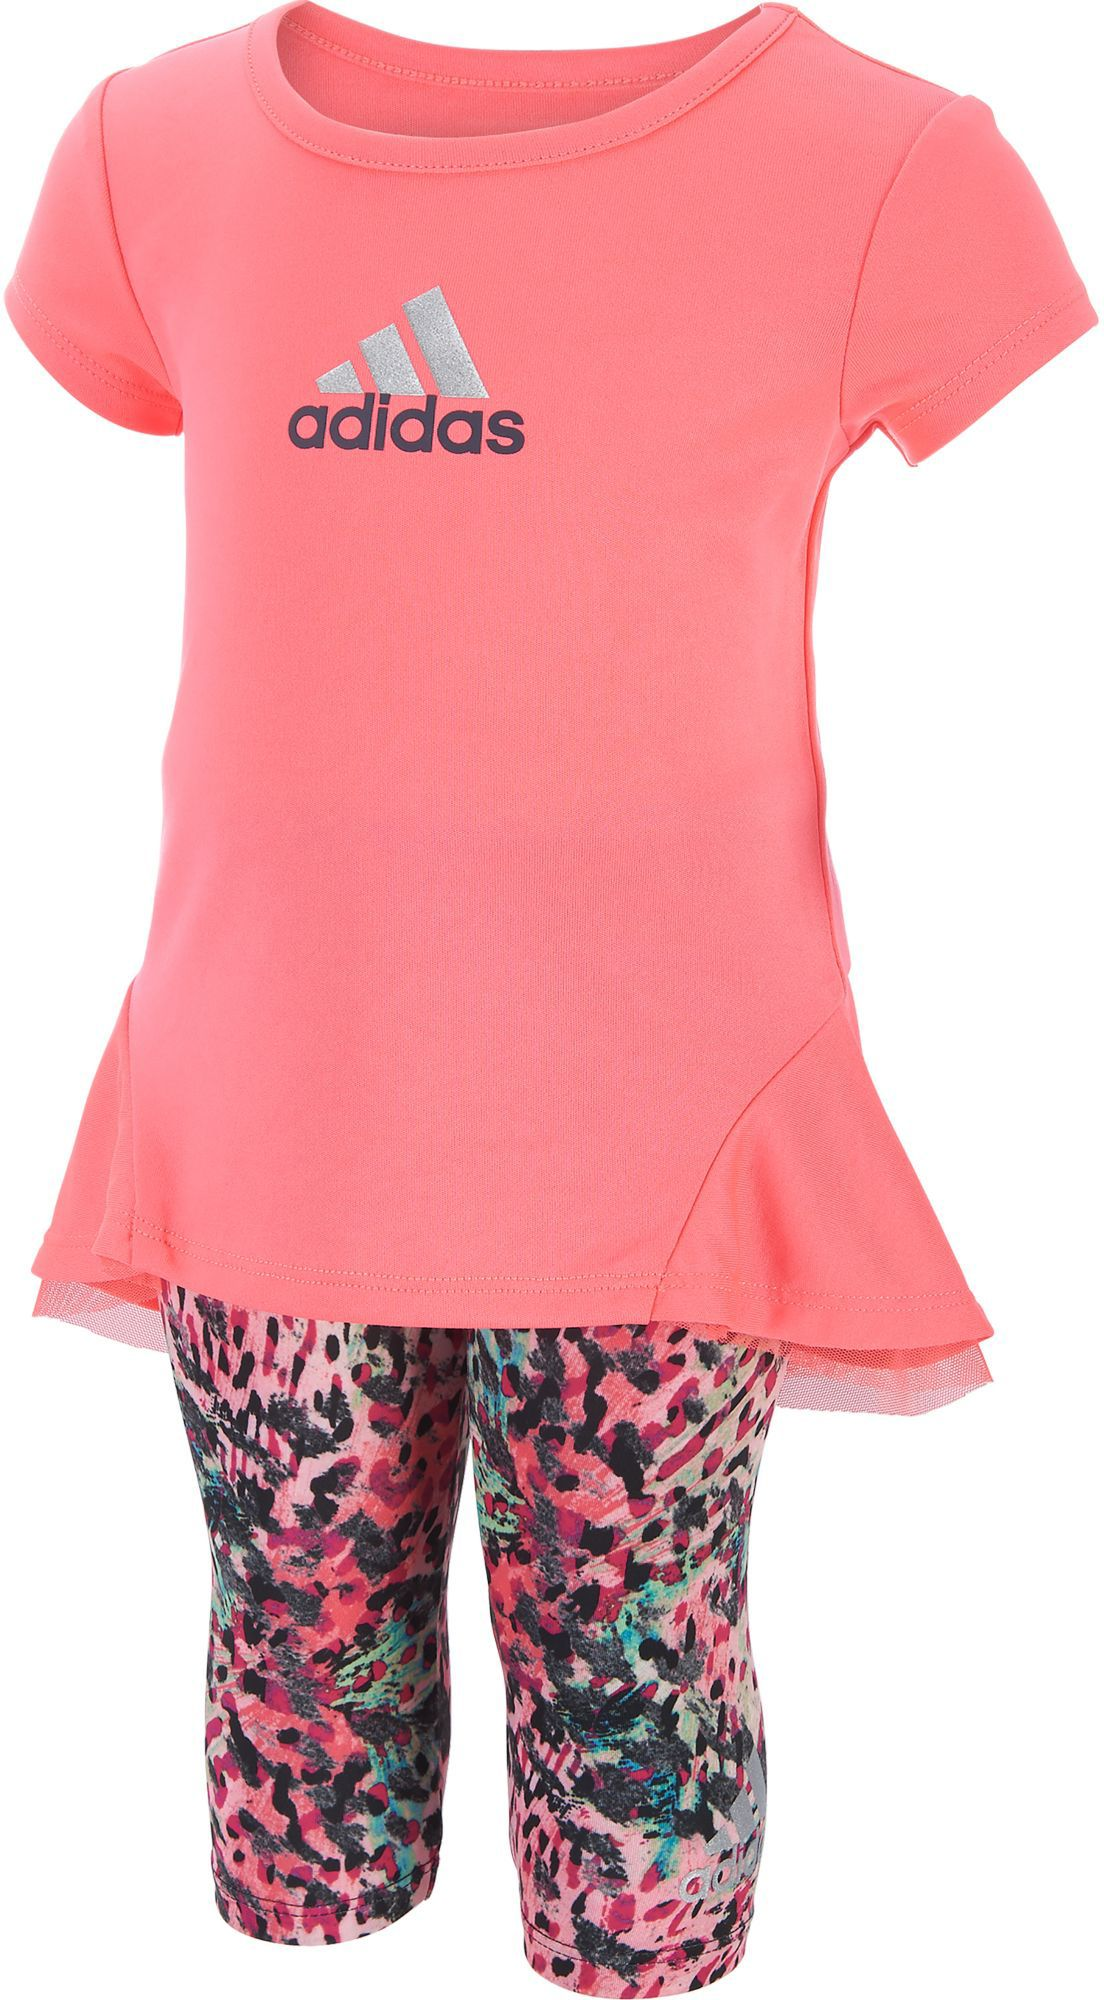 adidas Infant Girls T Shirt and Printed Capris Two Piece Set DICKS Sporting Goods